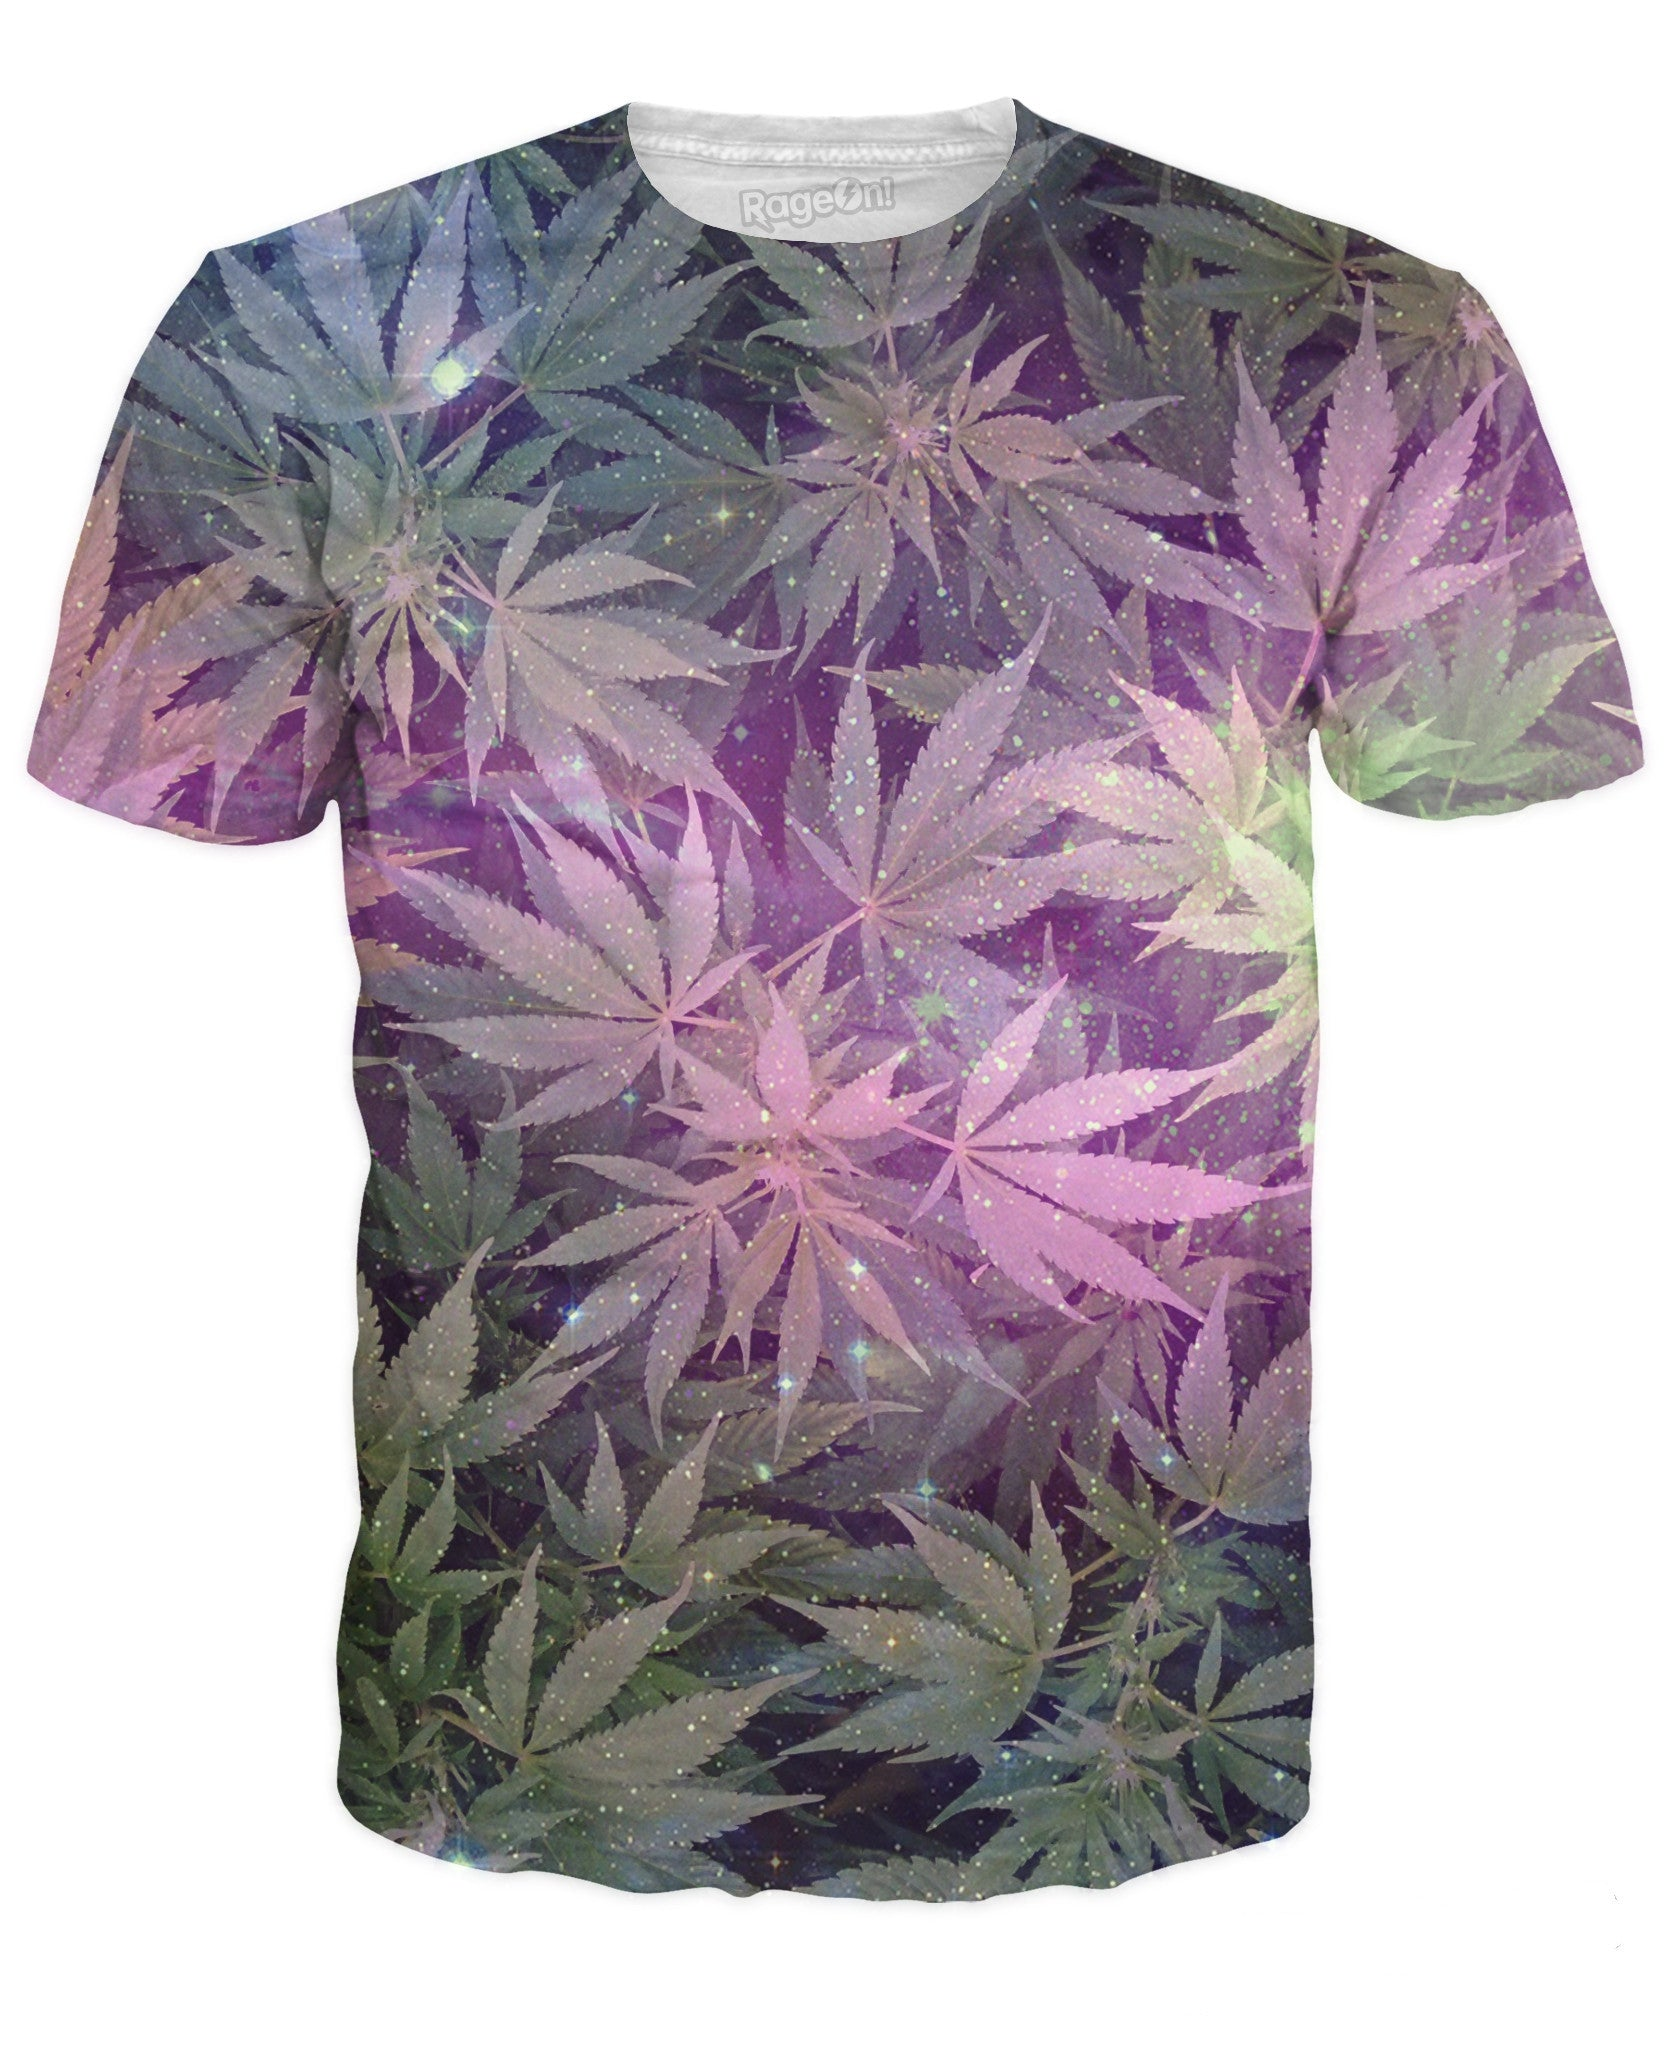 Higher Than Stars T-Shirt